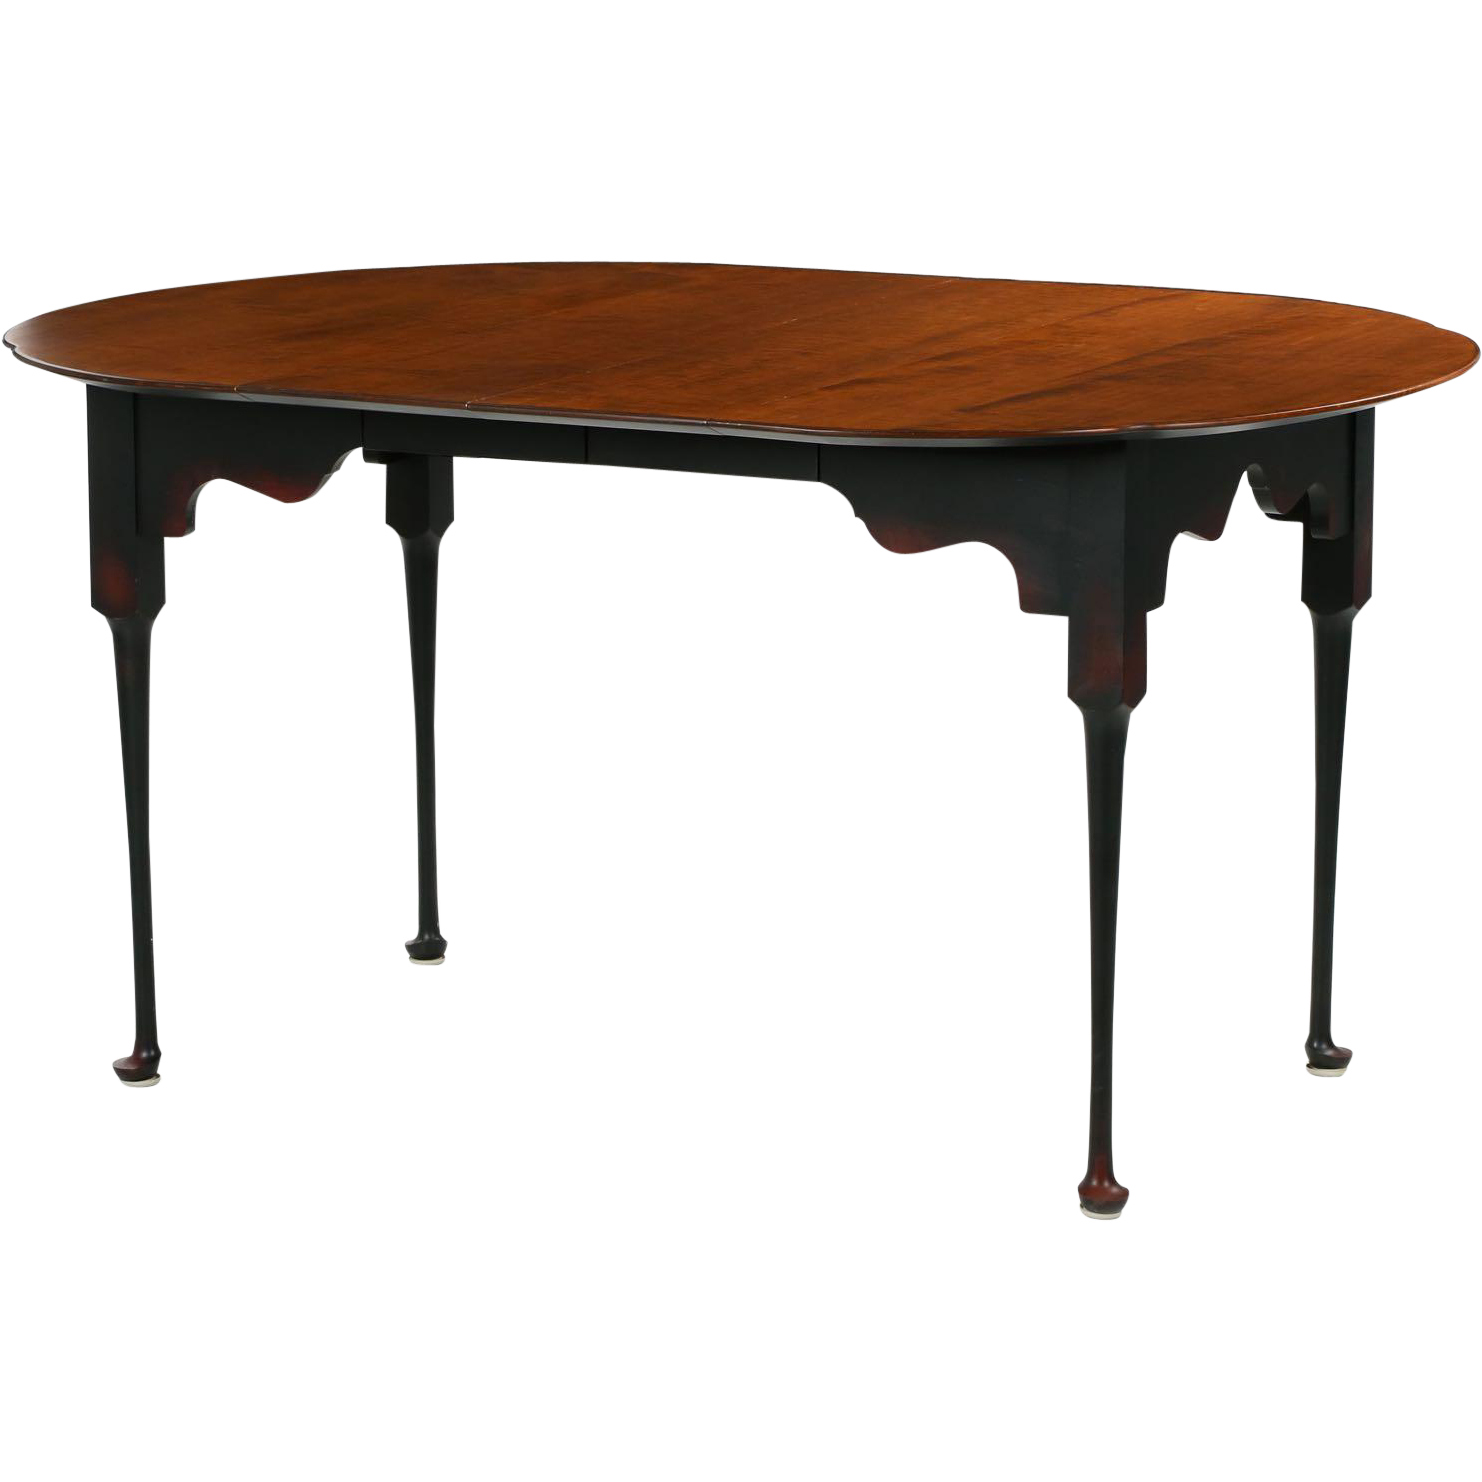 Maple Dining Tables Gallery Dining Table Ideas : 604KZA25P1L from sorahana.info size 1482 x 1482 png 388kB